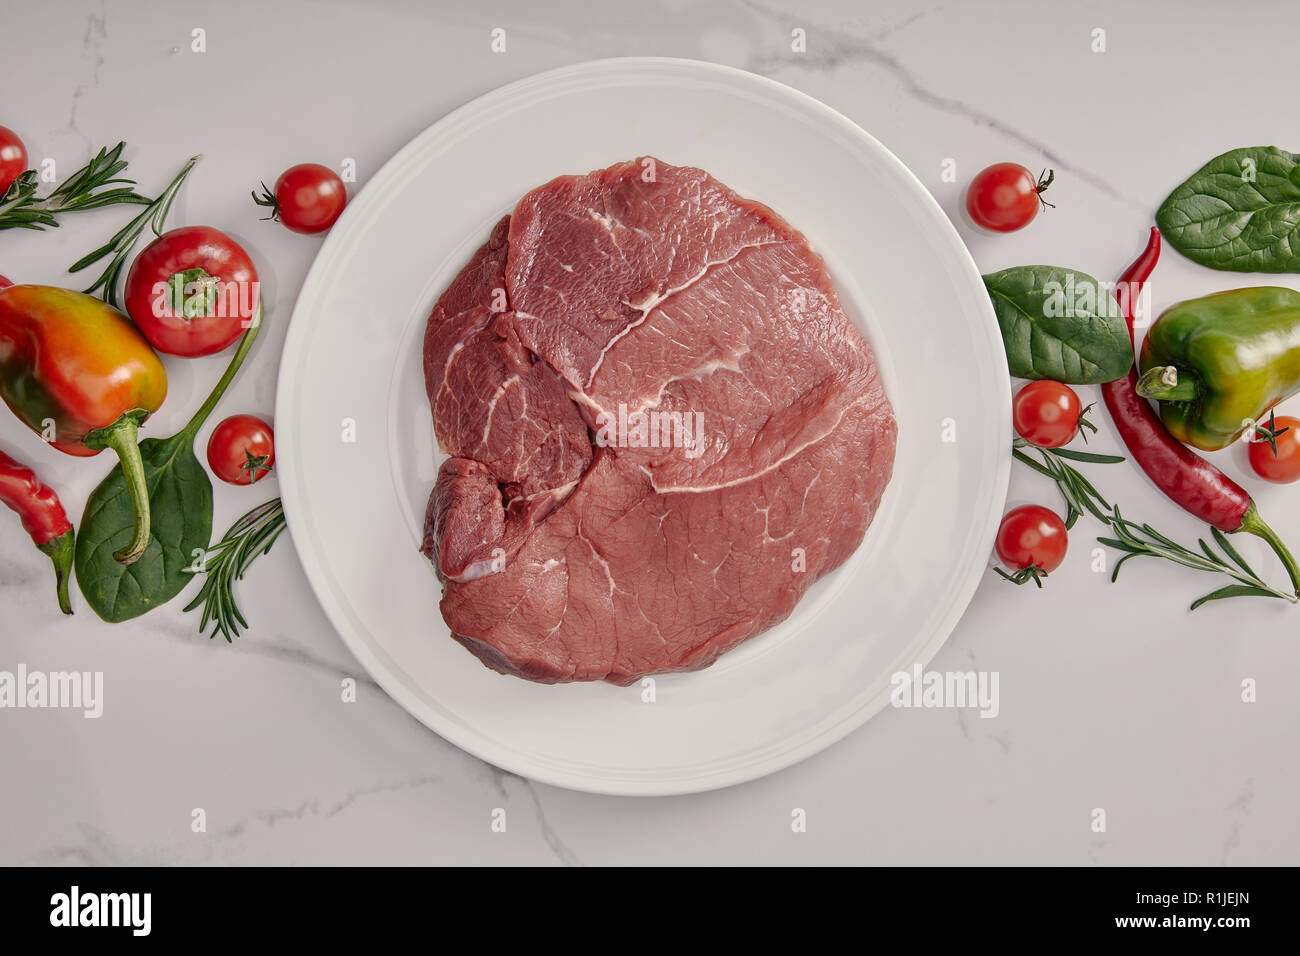 top view of fresh raw meat on plate with vegetables and herbs on white background - Stock Image